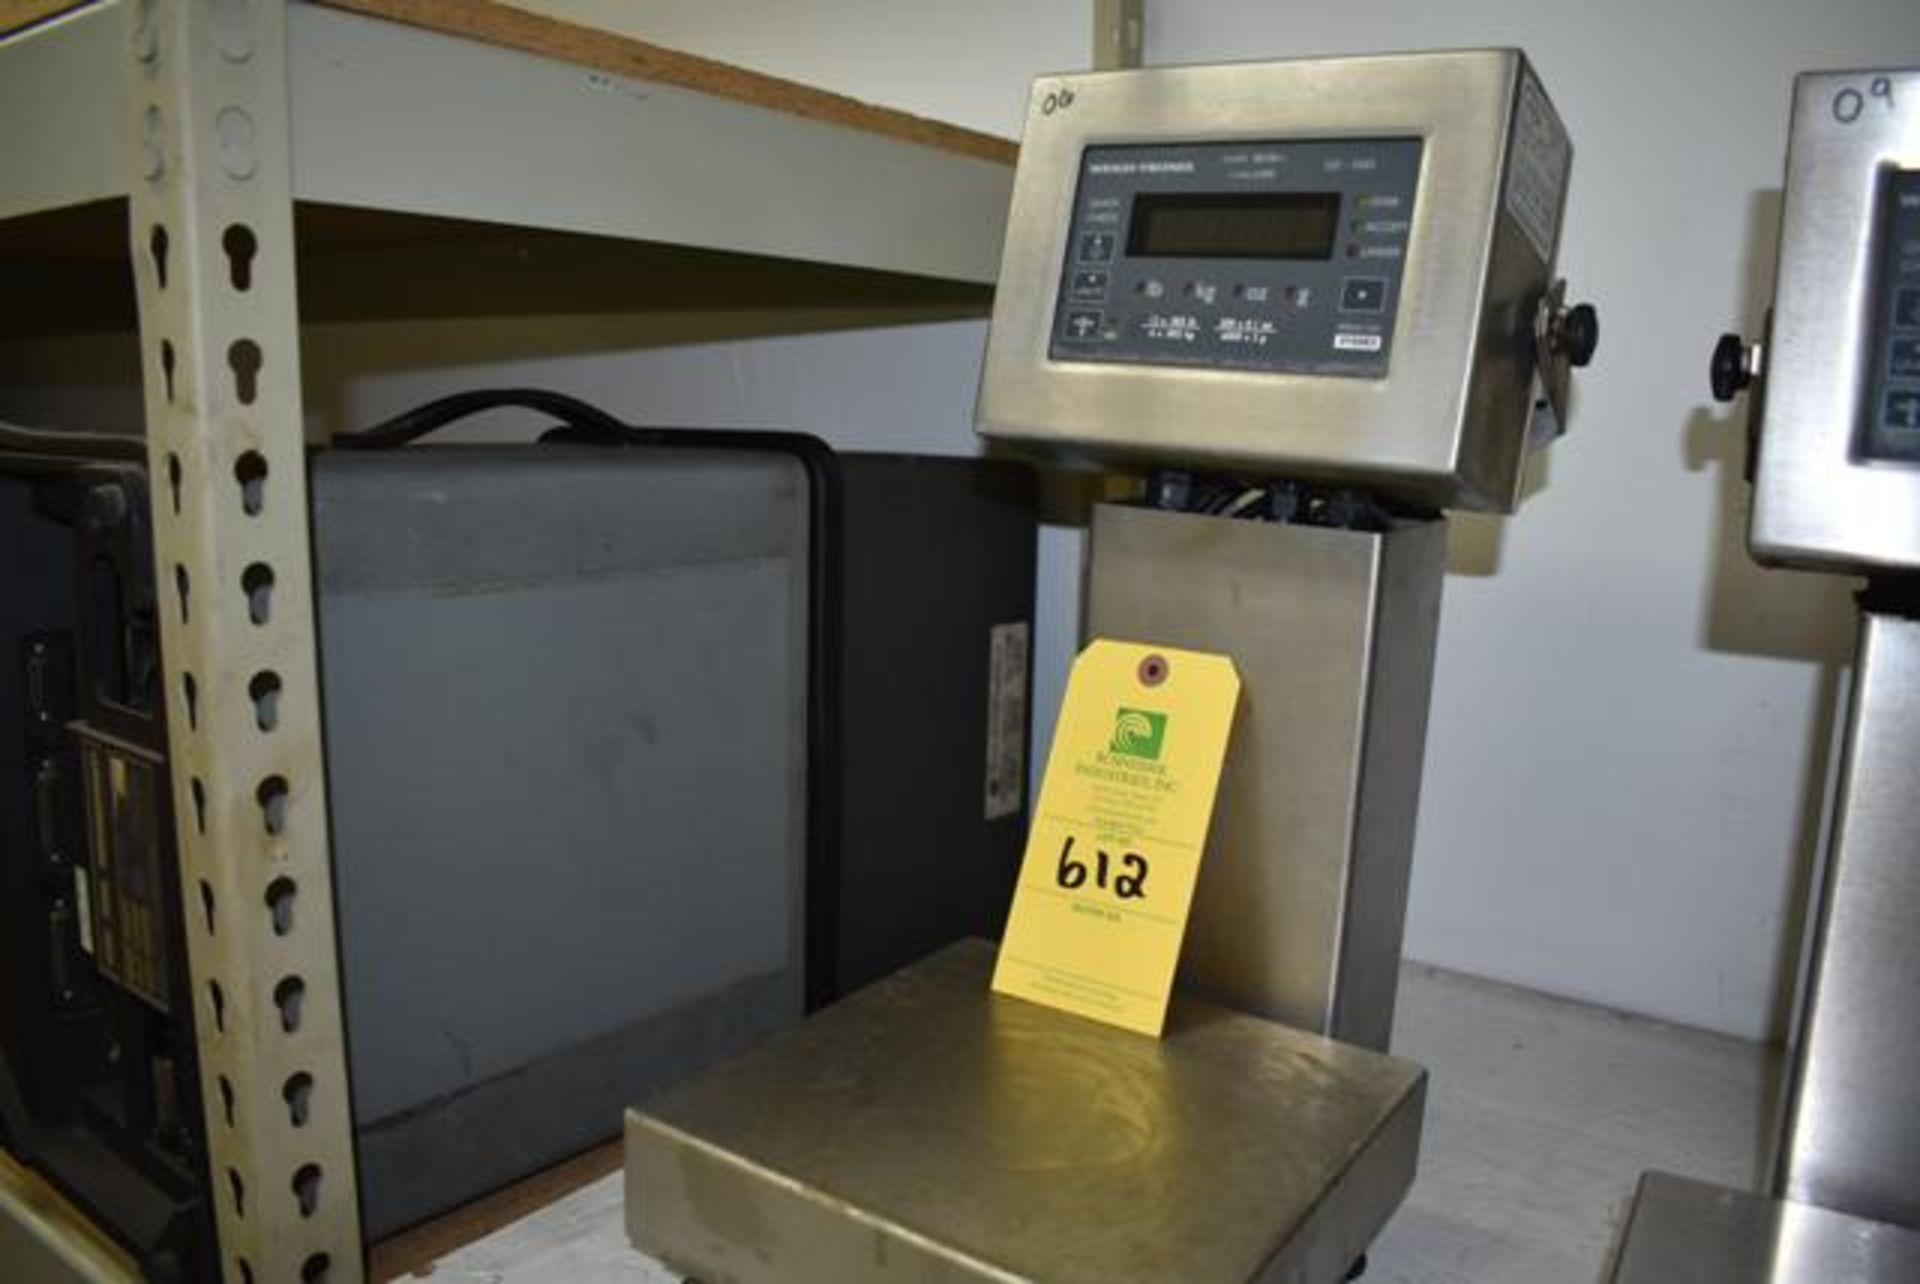 Lot 612 - Weigh-Tronix Model #3265 Lab Scale, Loading Fee: $10